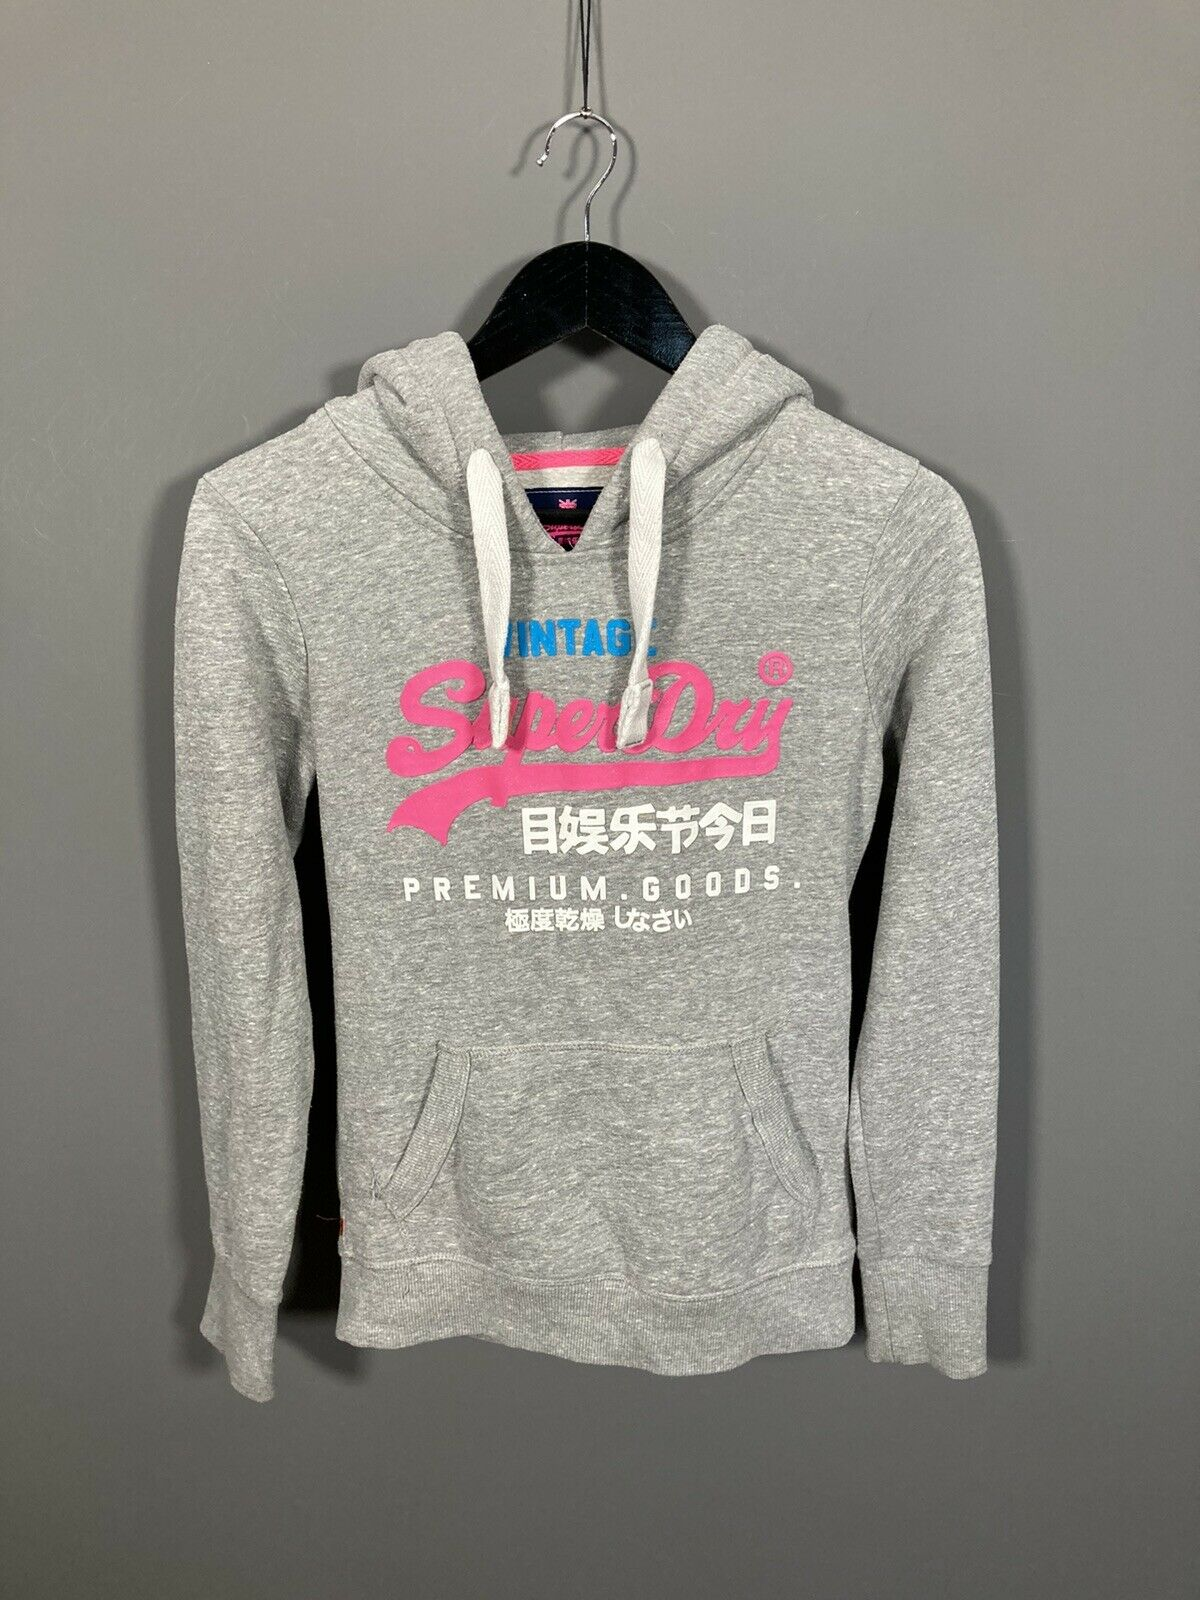 SUPERDRY Hoodie - Size Small - Grey - Great Condition - Women's